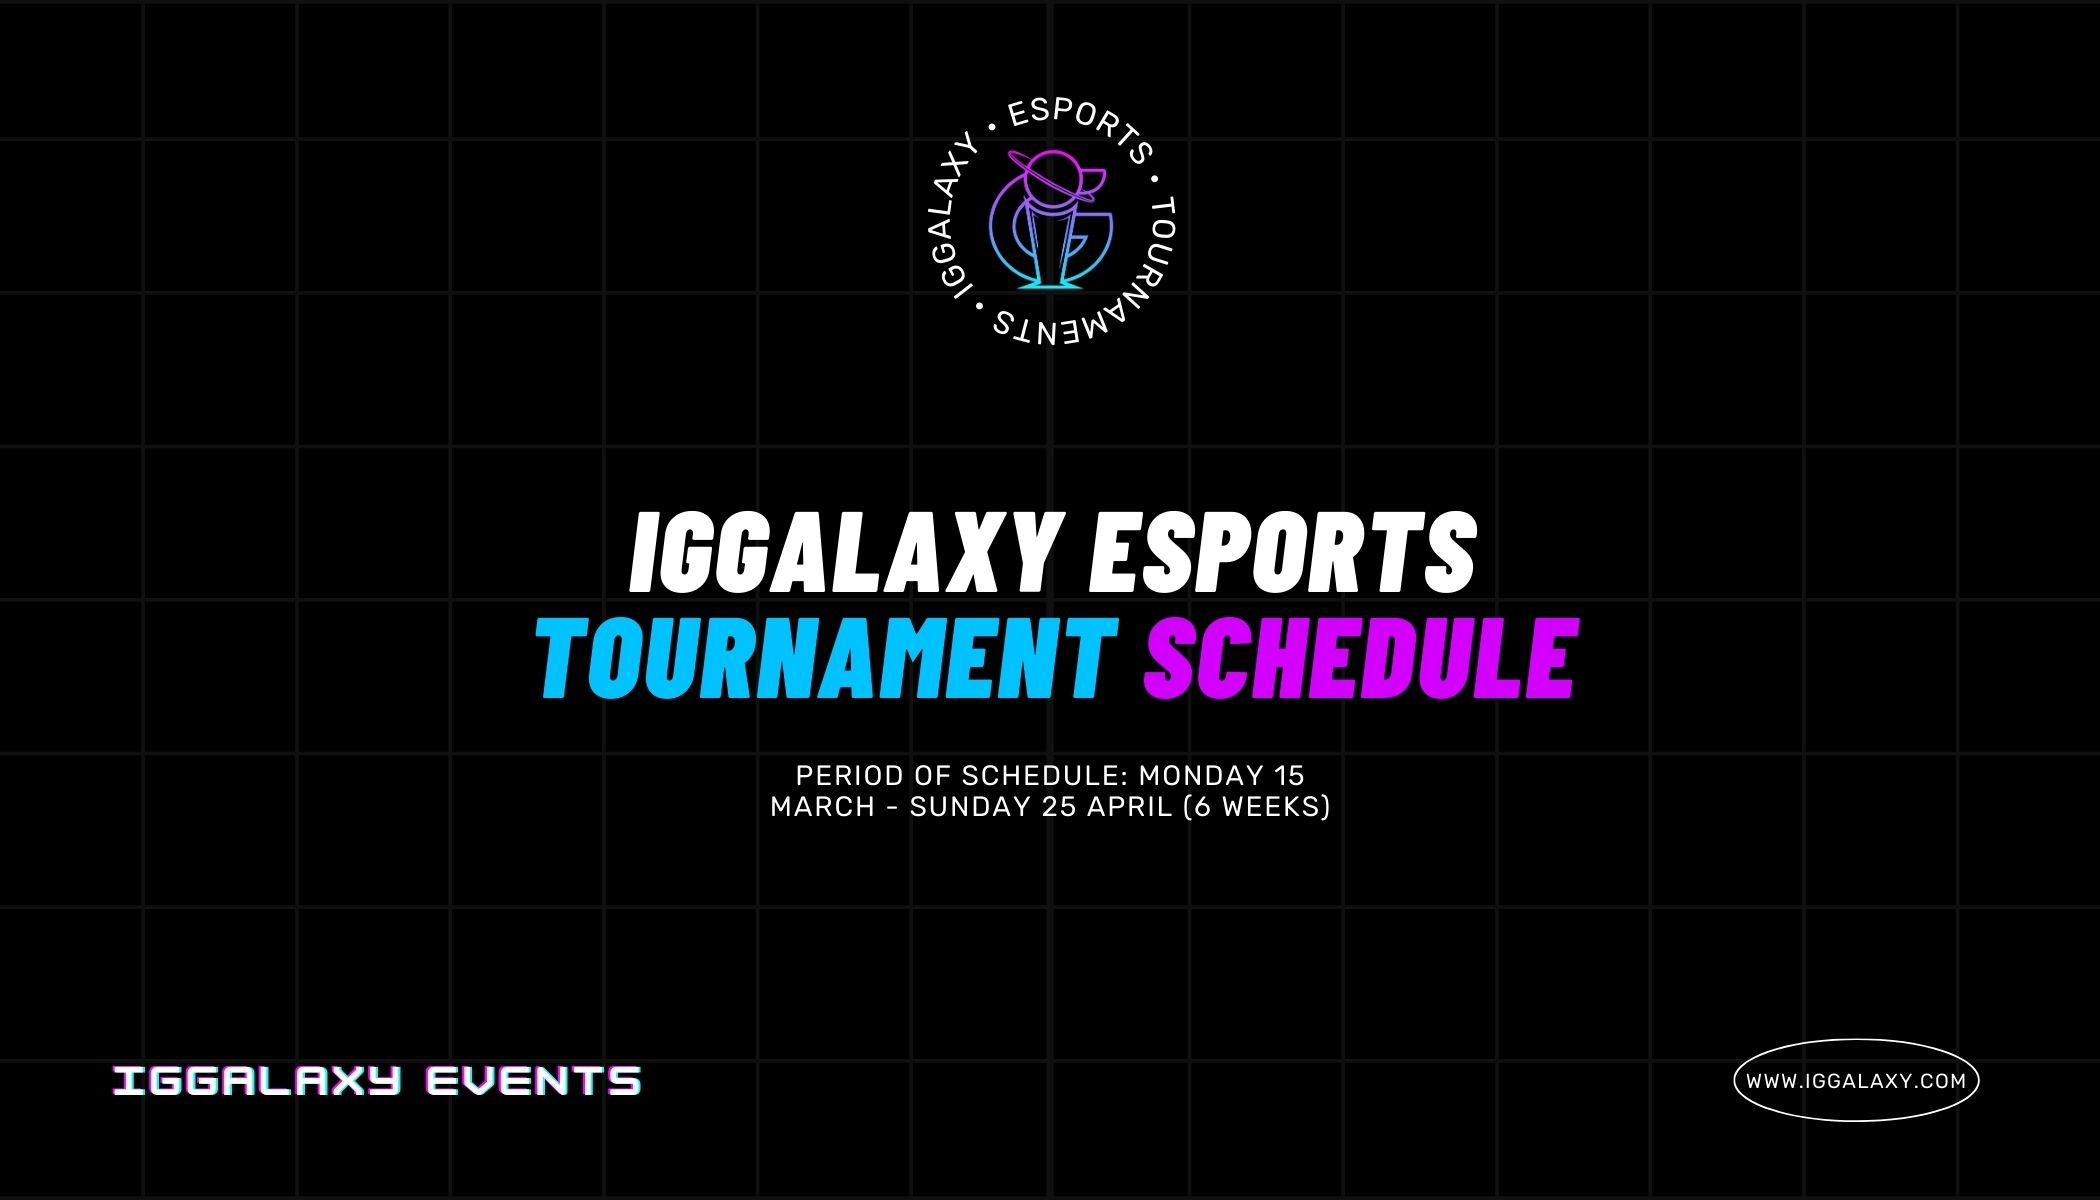 New IGGalaxy esports tournament schedule available now!